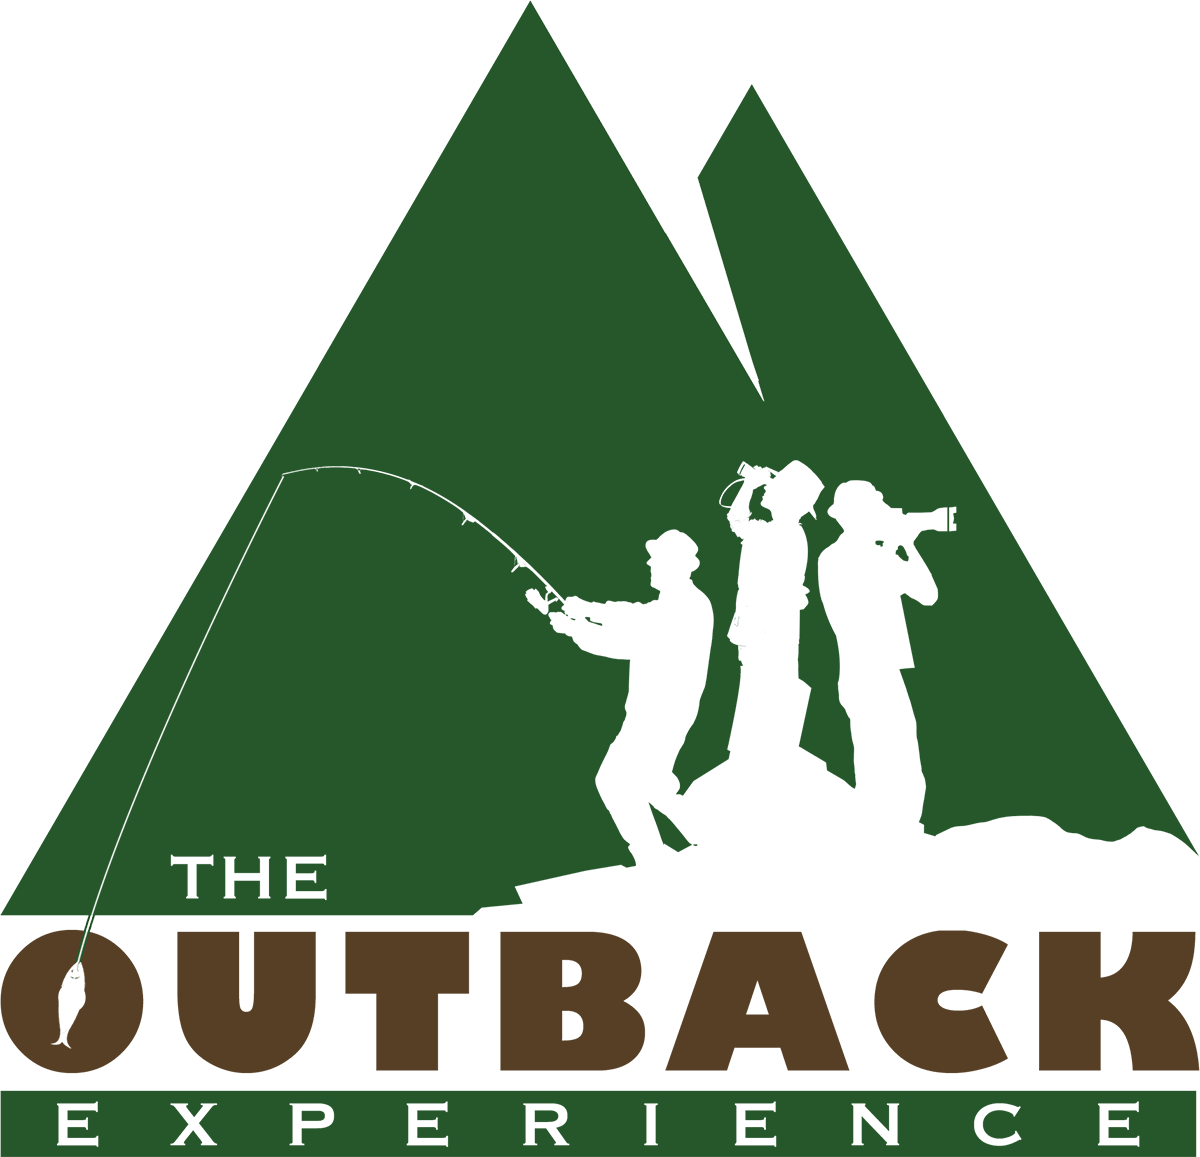 The Outback Experience